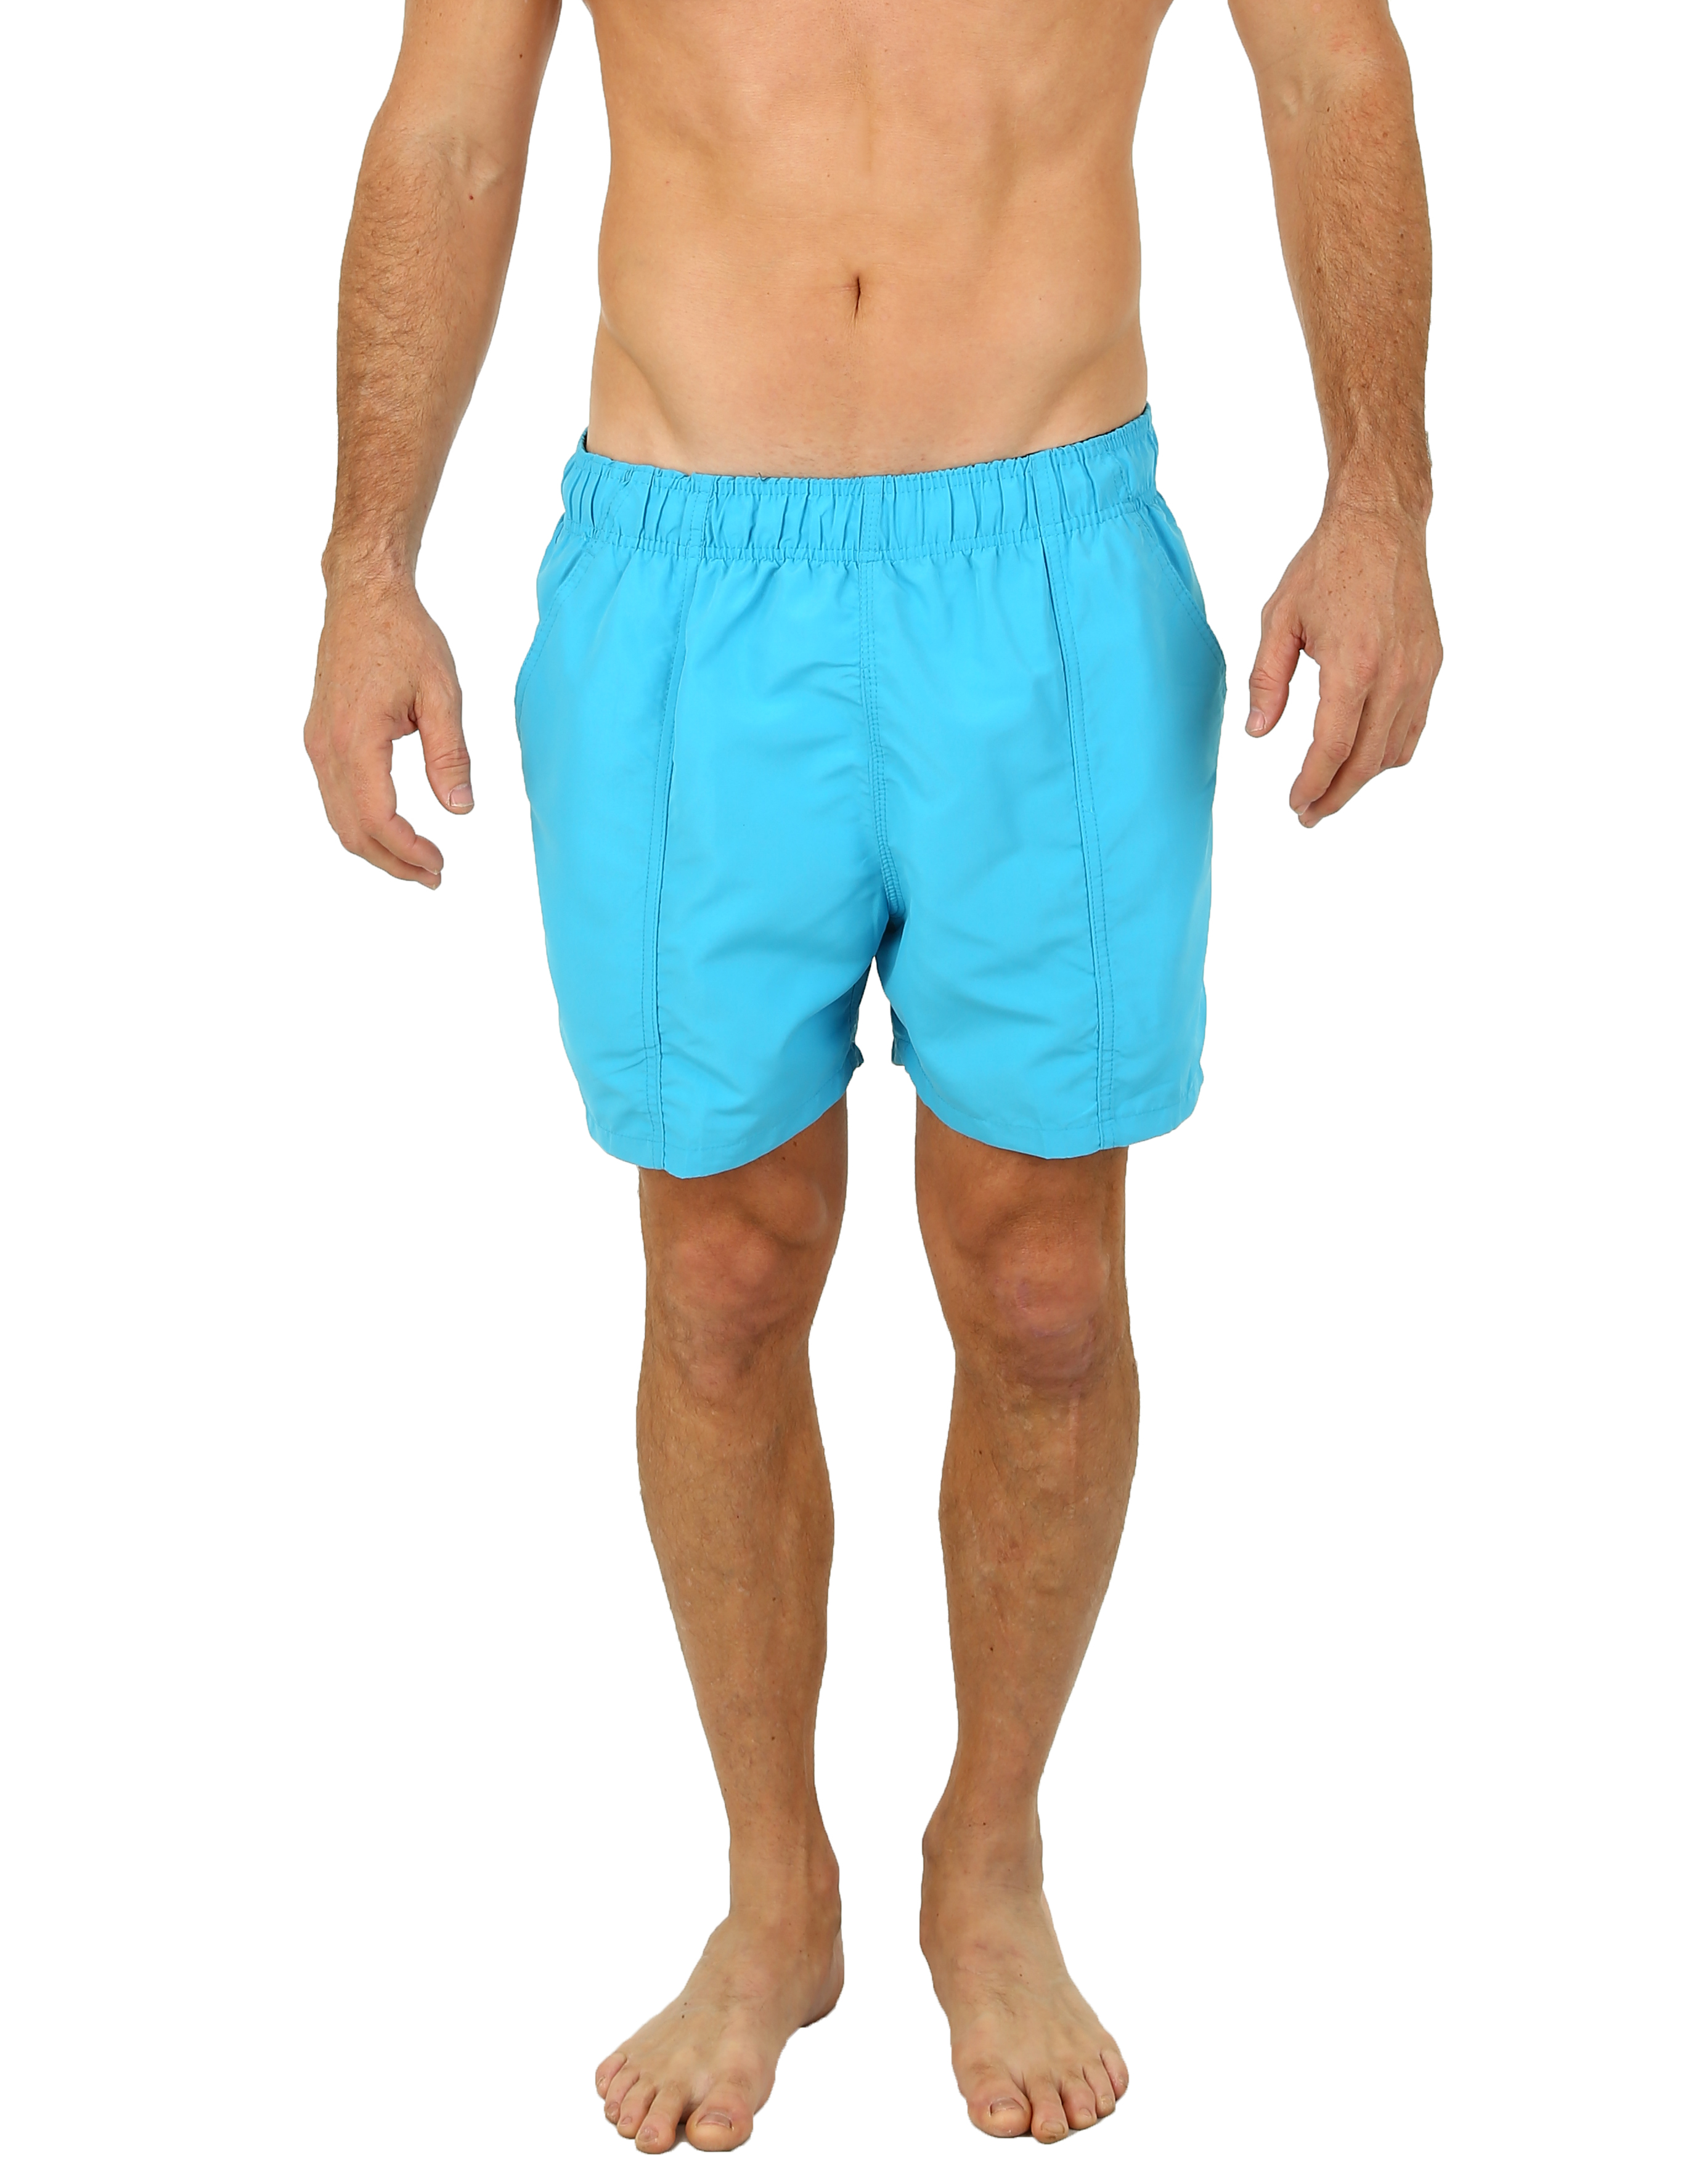 Men's extreme short shorts are perfect for biking, hiking and trailblazing during intense summer heat and humid weather conditions. Rather than sport a pair of men's cutoff shorts, don a pair of the right active wear shorts for full range of movement while keeping cool.